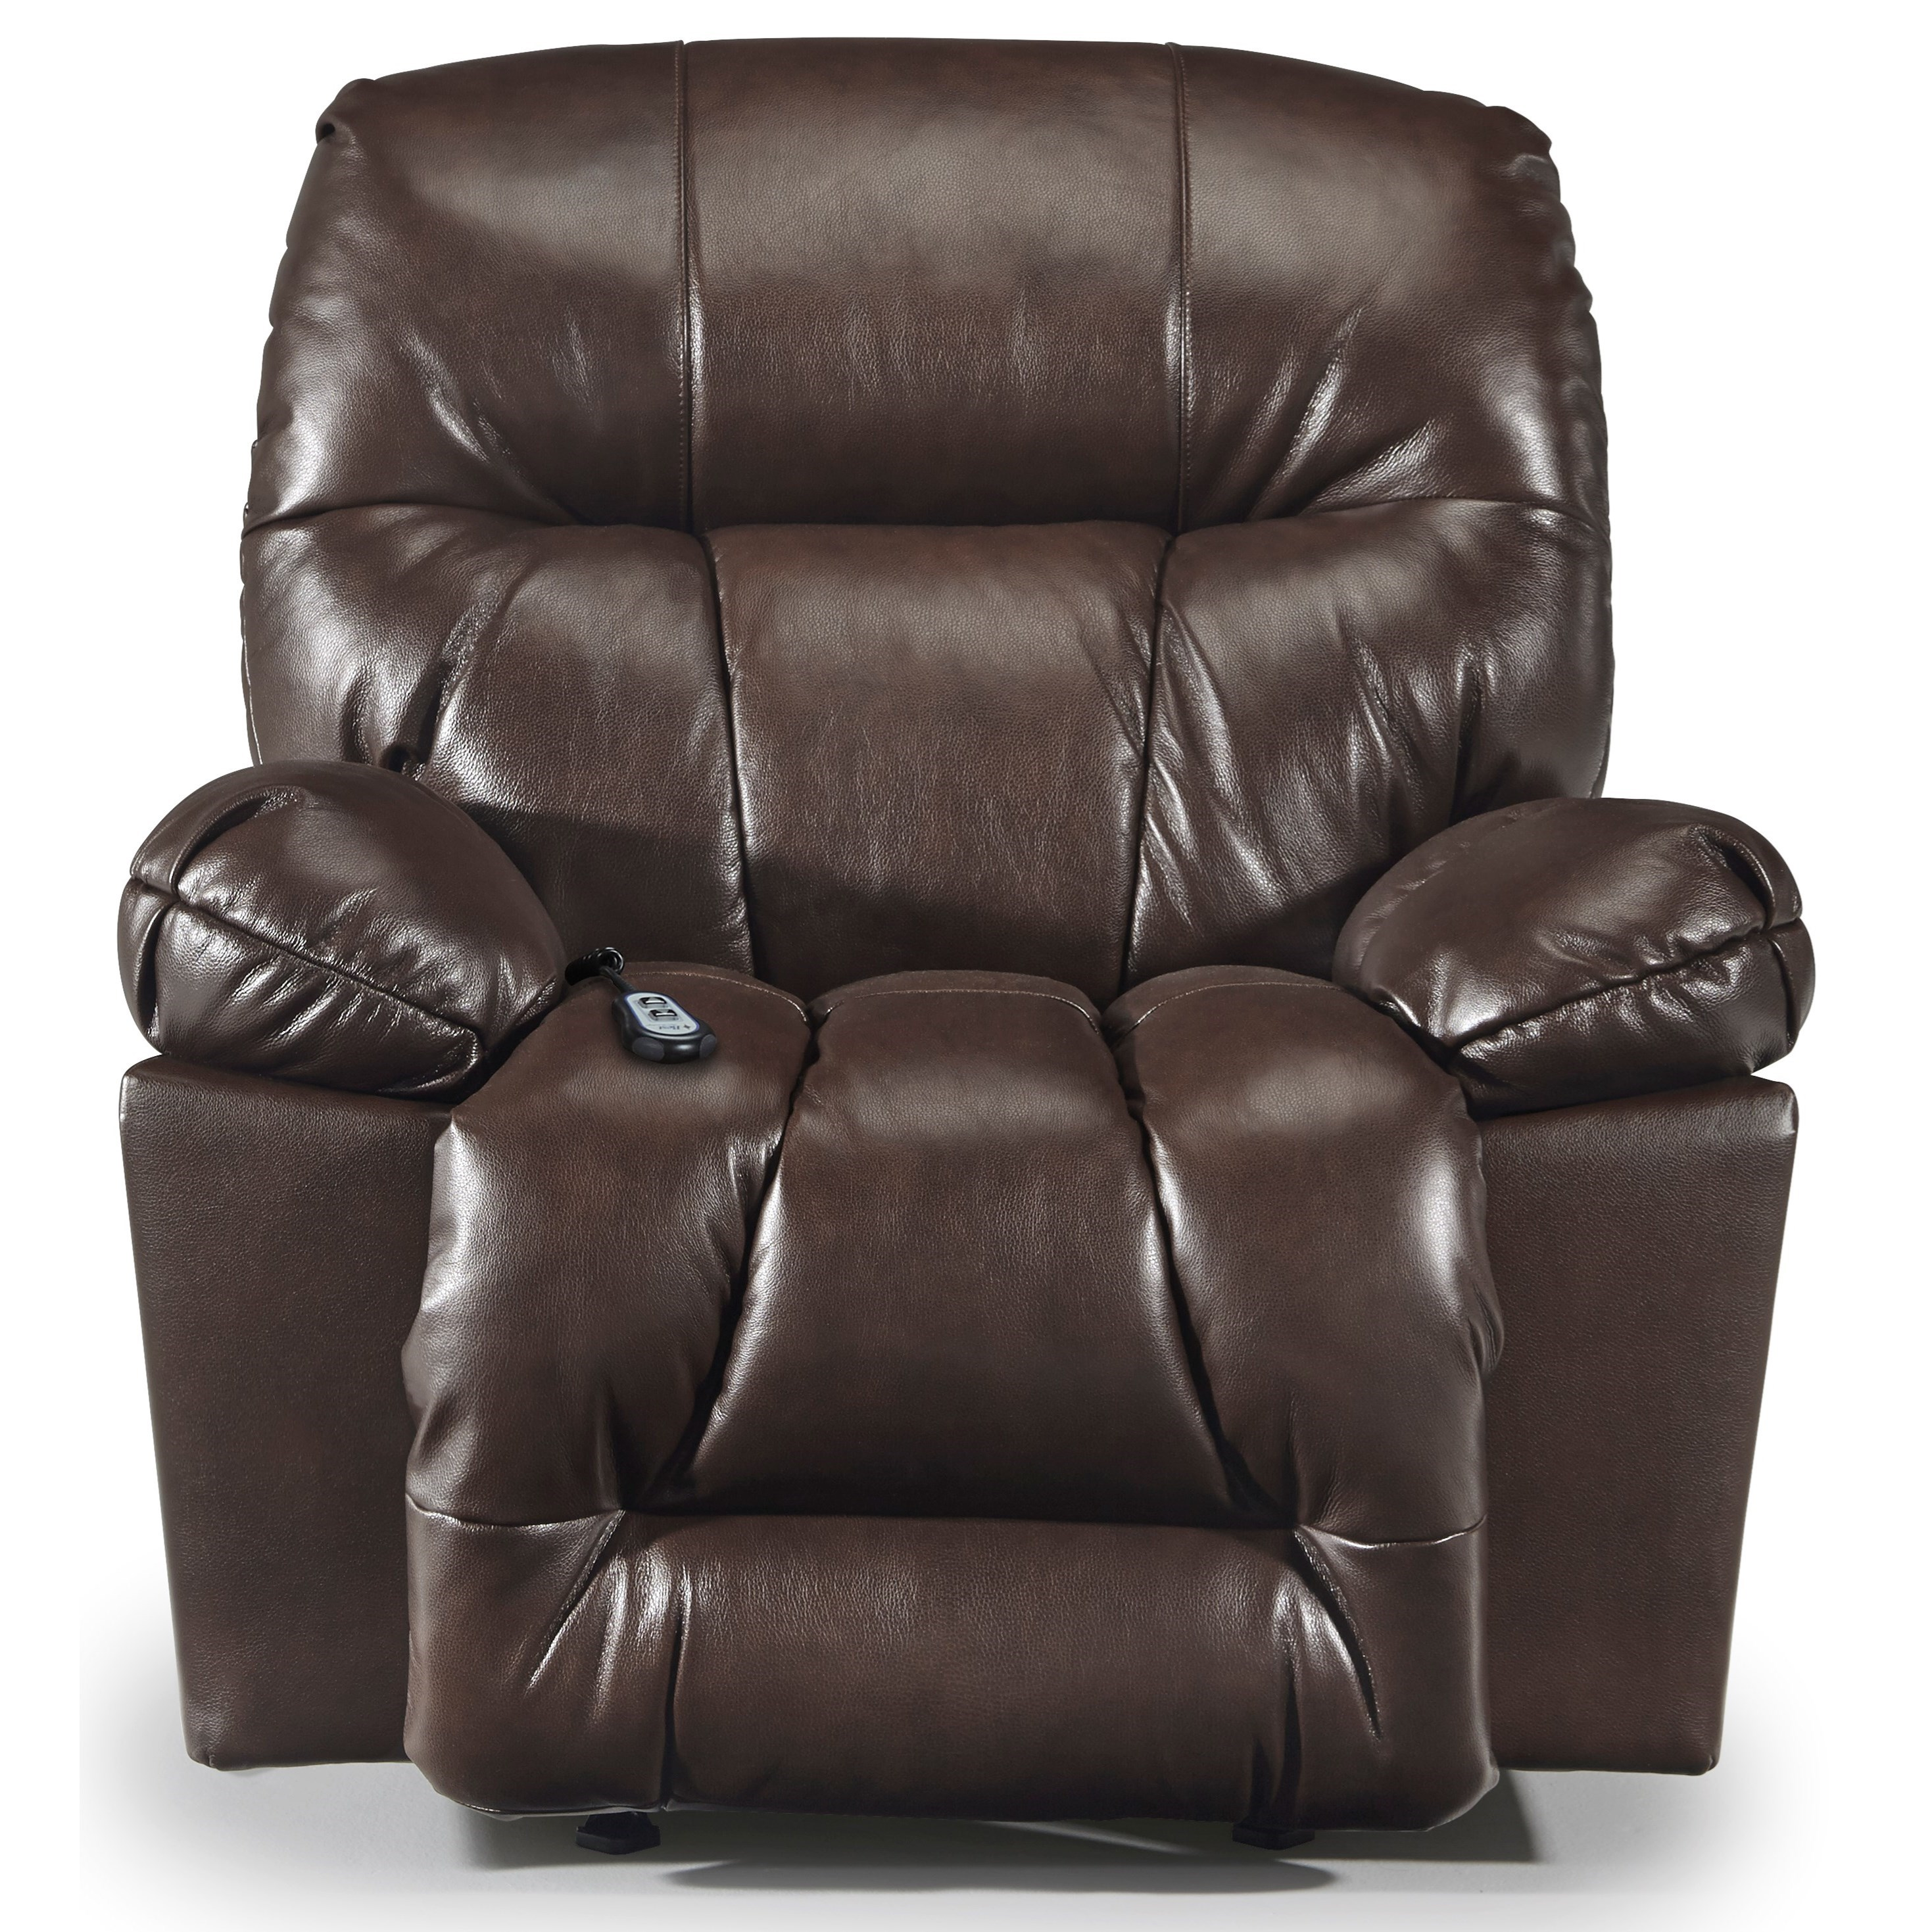 Retreat Power Lift Chair Recliner by Best Home Furnishings at Baer's Furniture